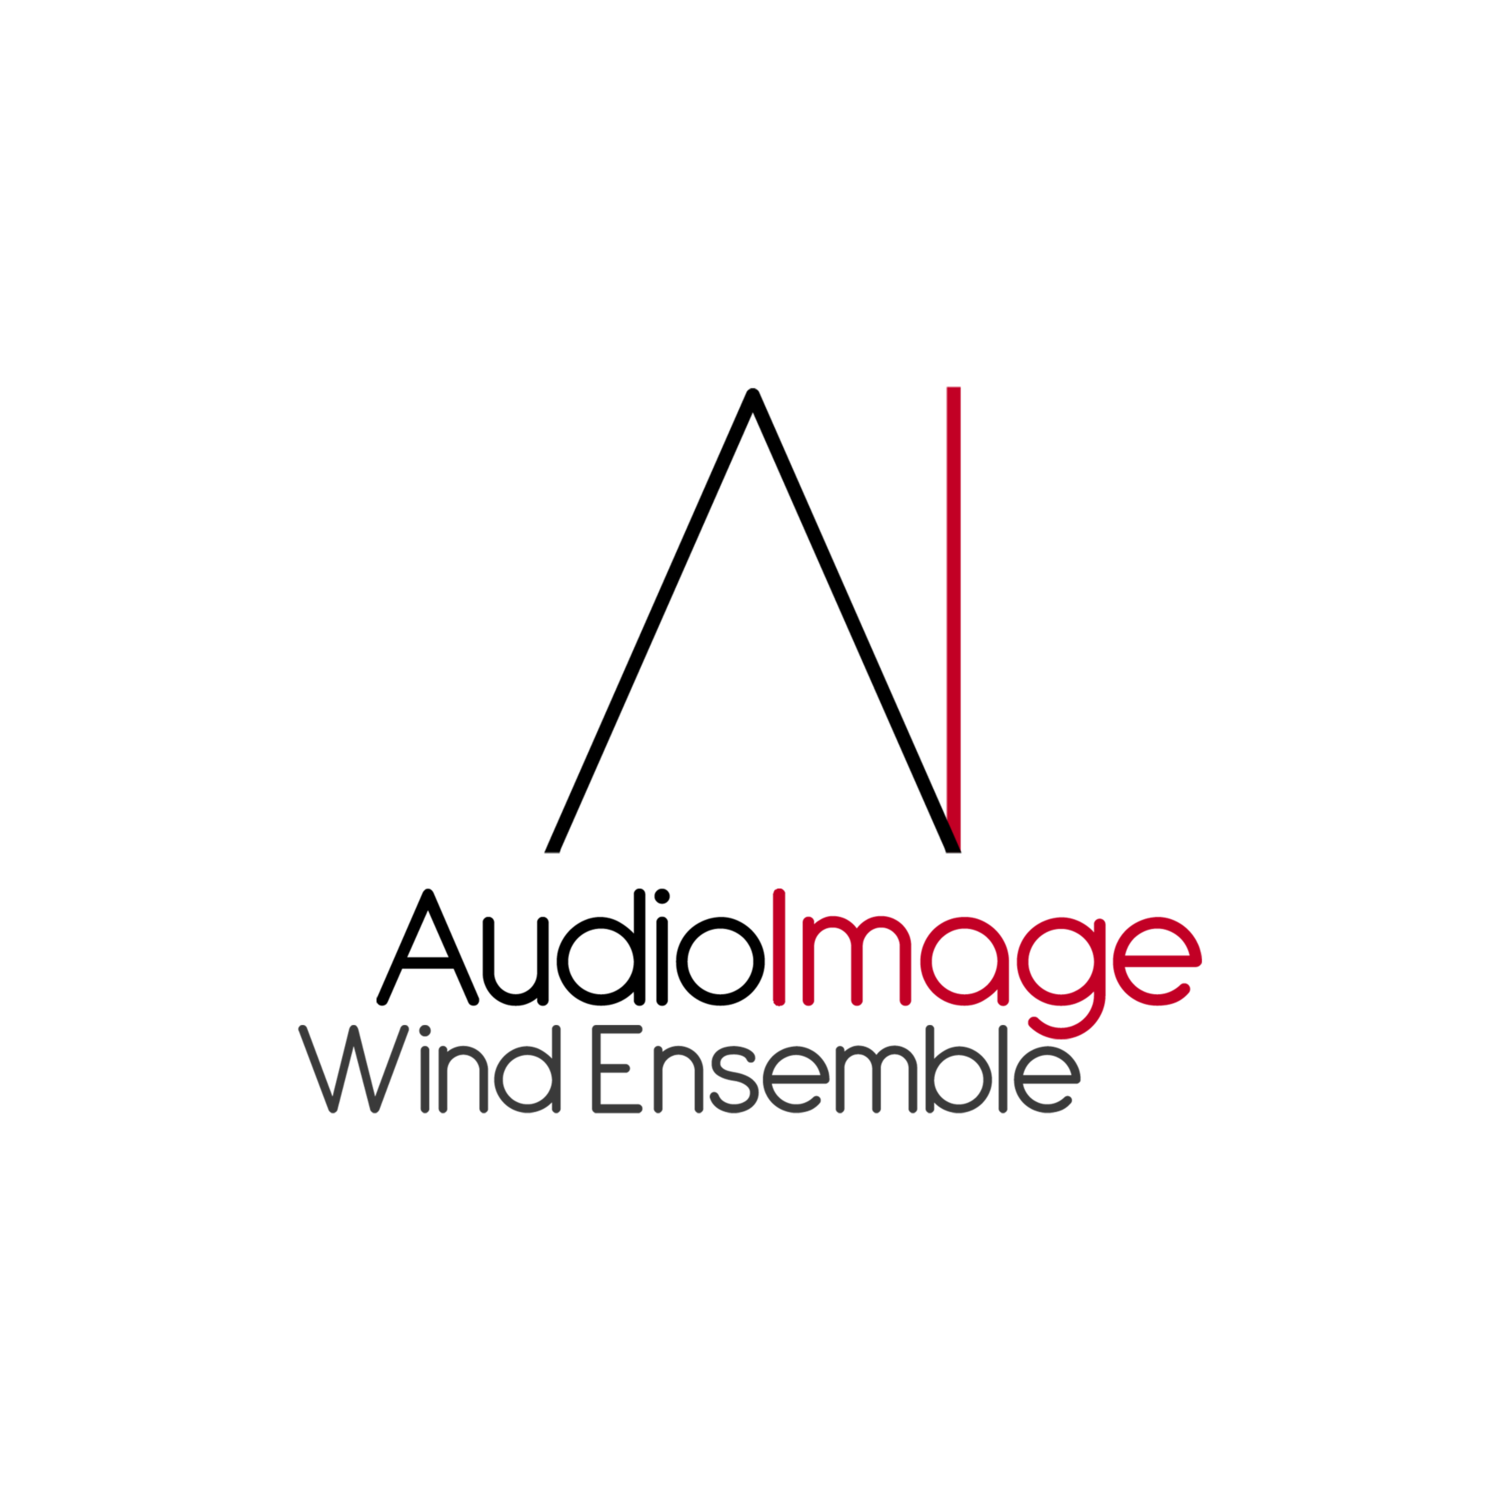 AudioImage Wind Ensemble